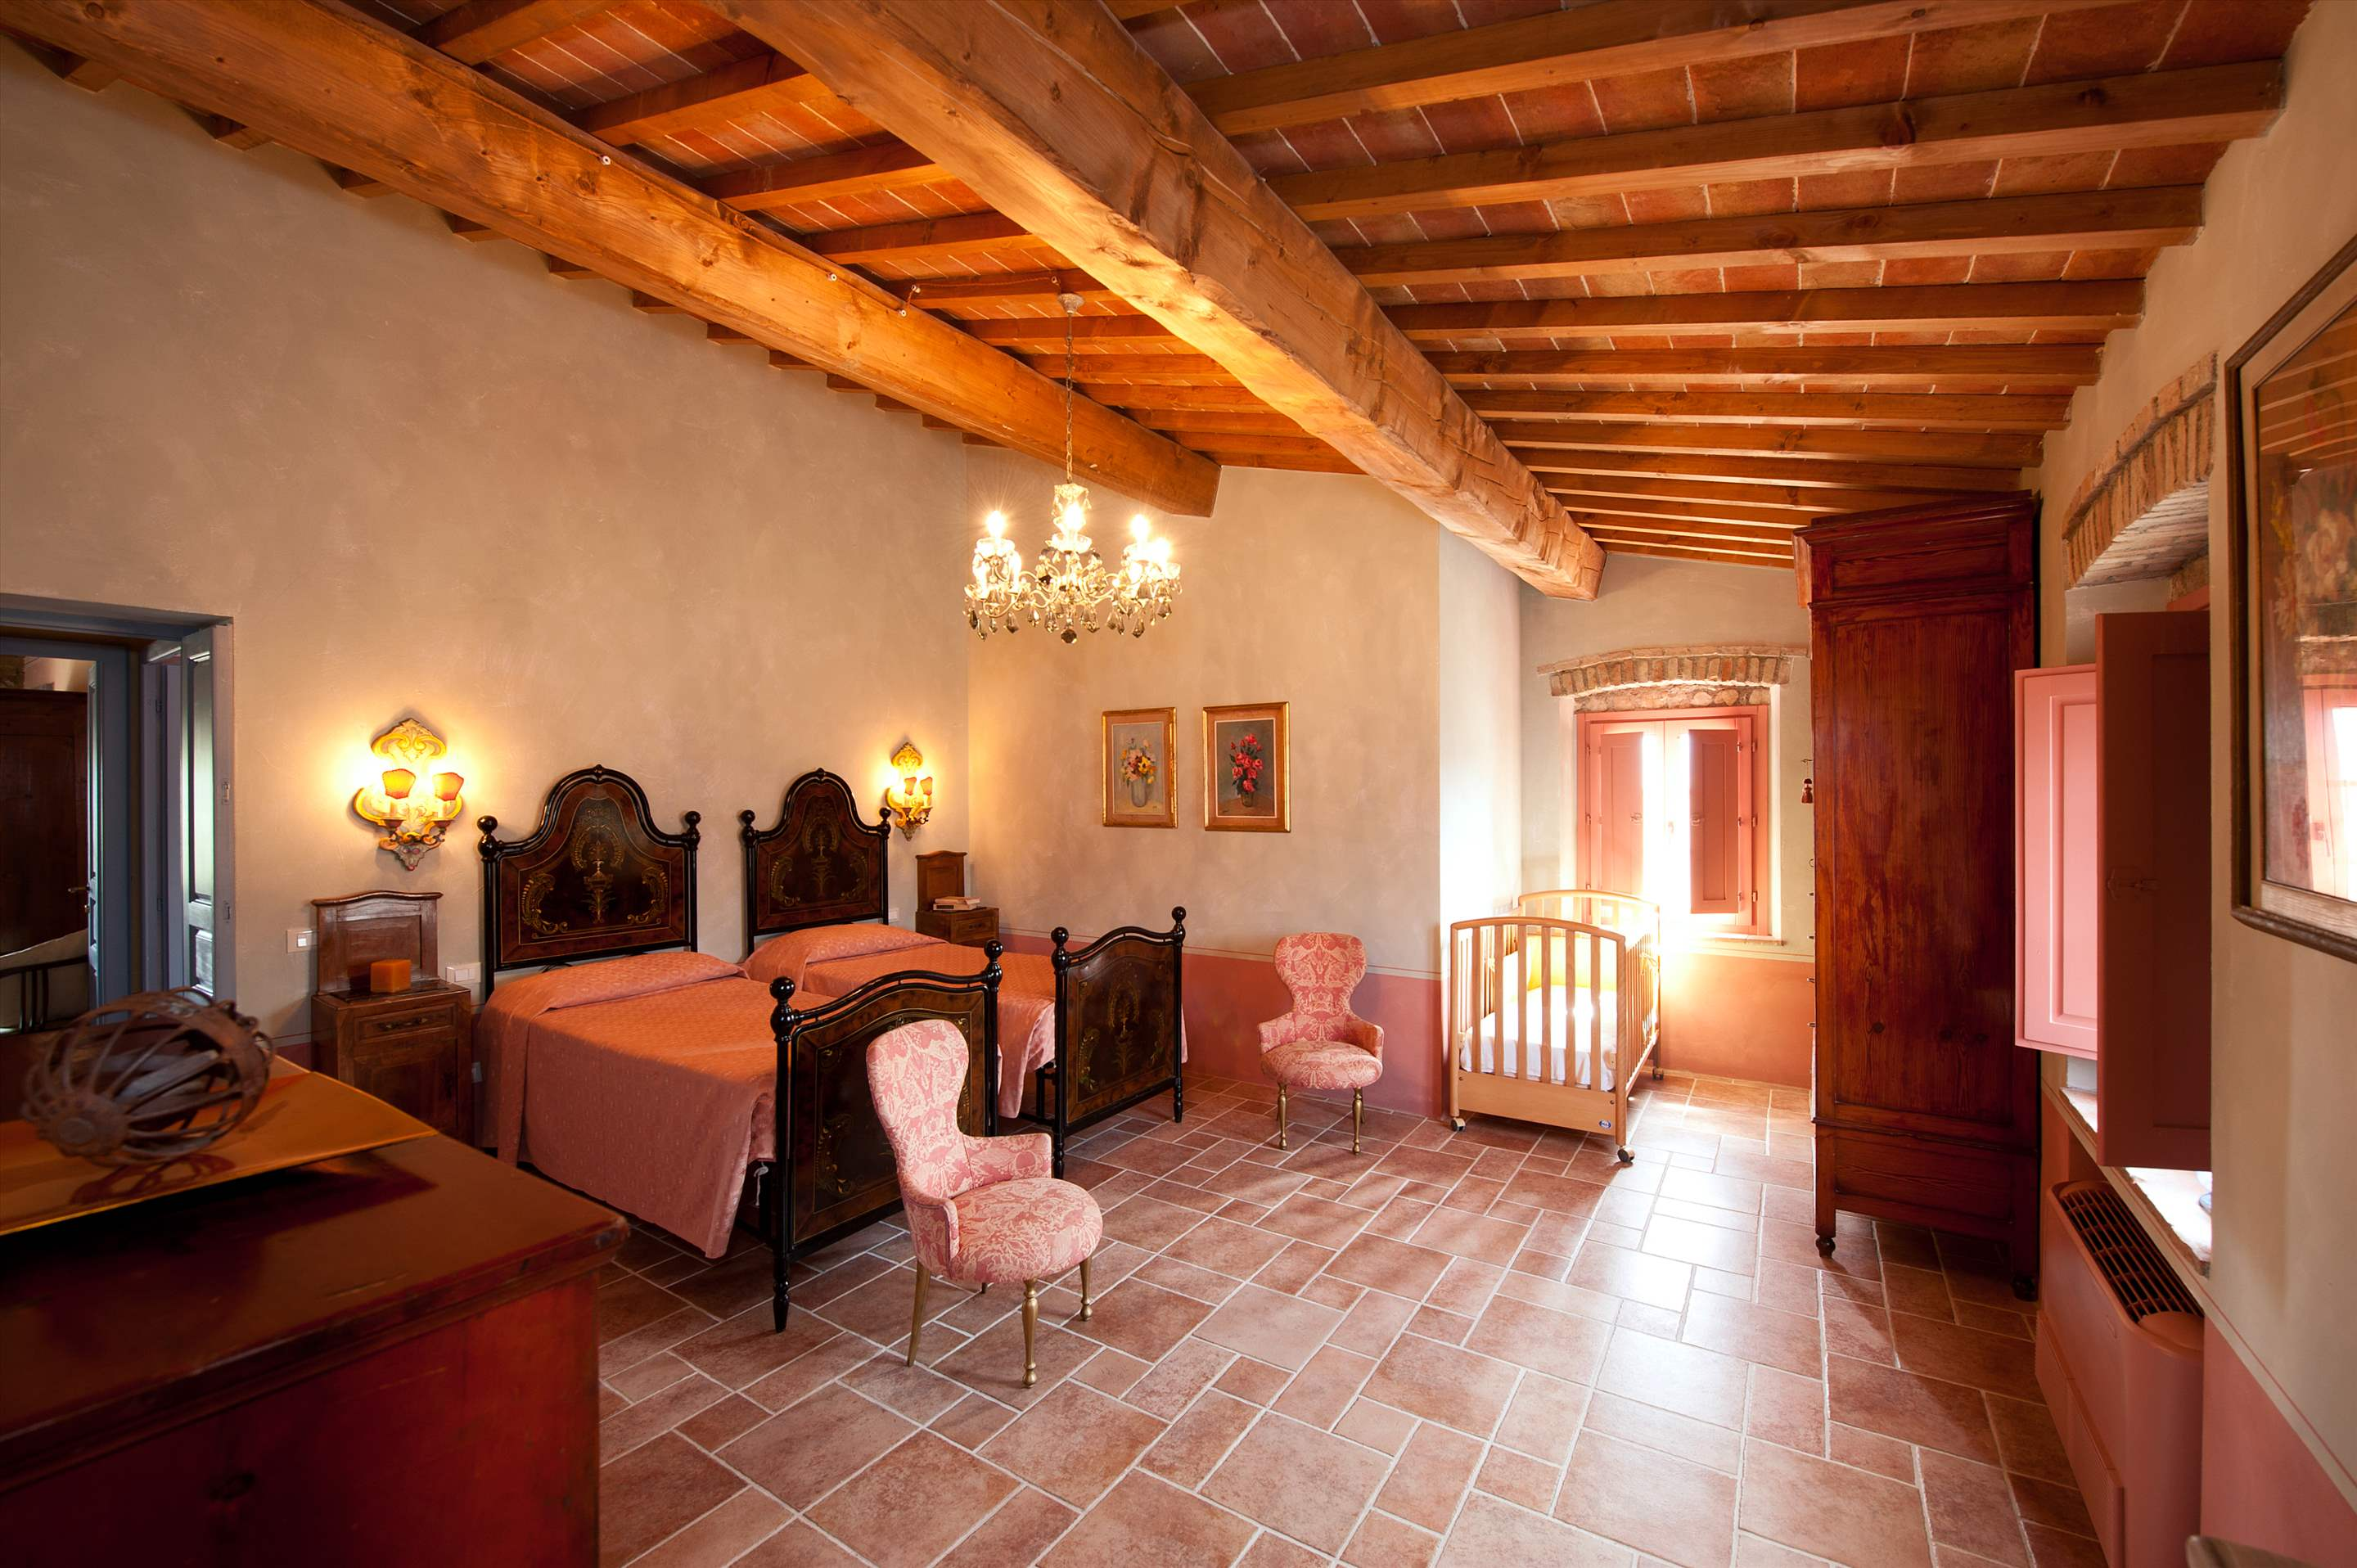 Podere I Gotti, 5 bedroom villa in Tuscany Coast, Tuscany Photo #20